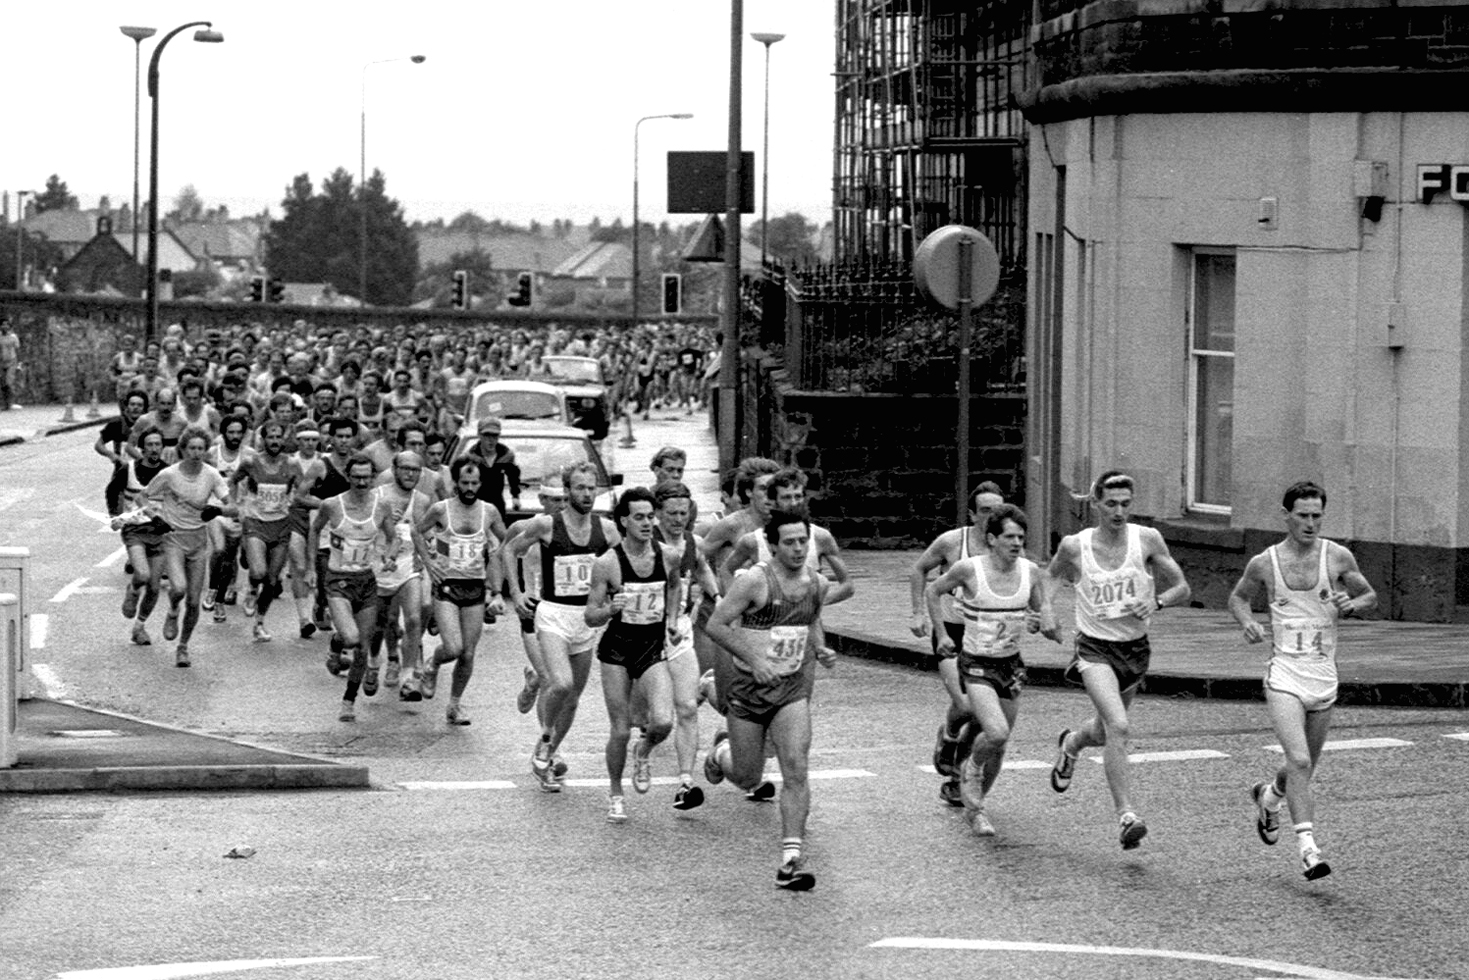 Edinburgh Marathon, Start, 1985